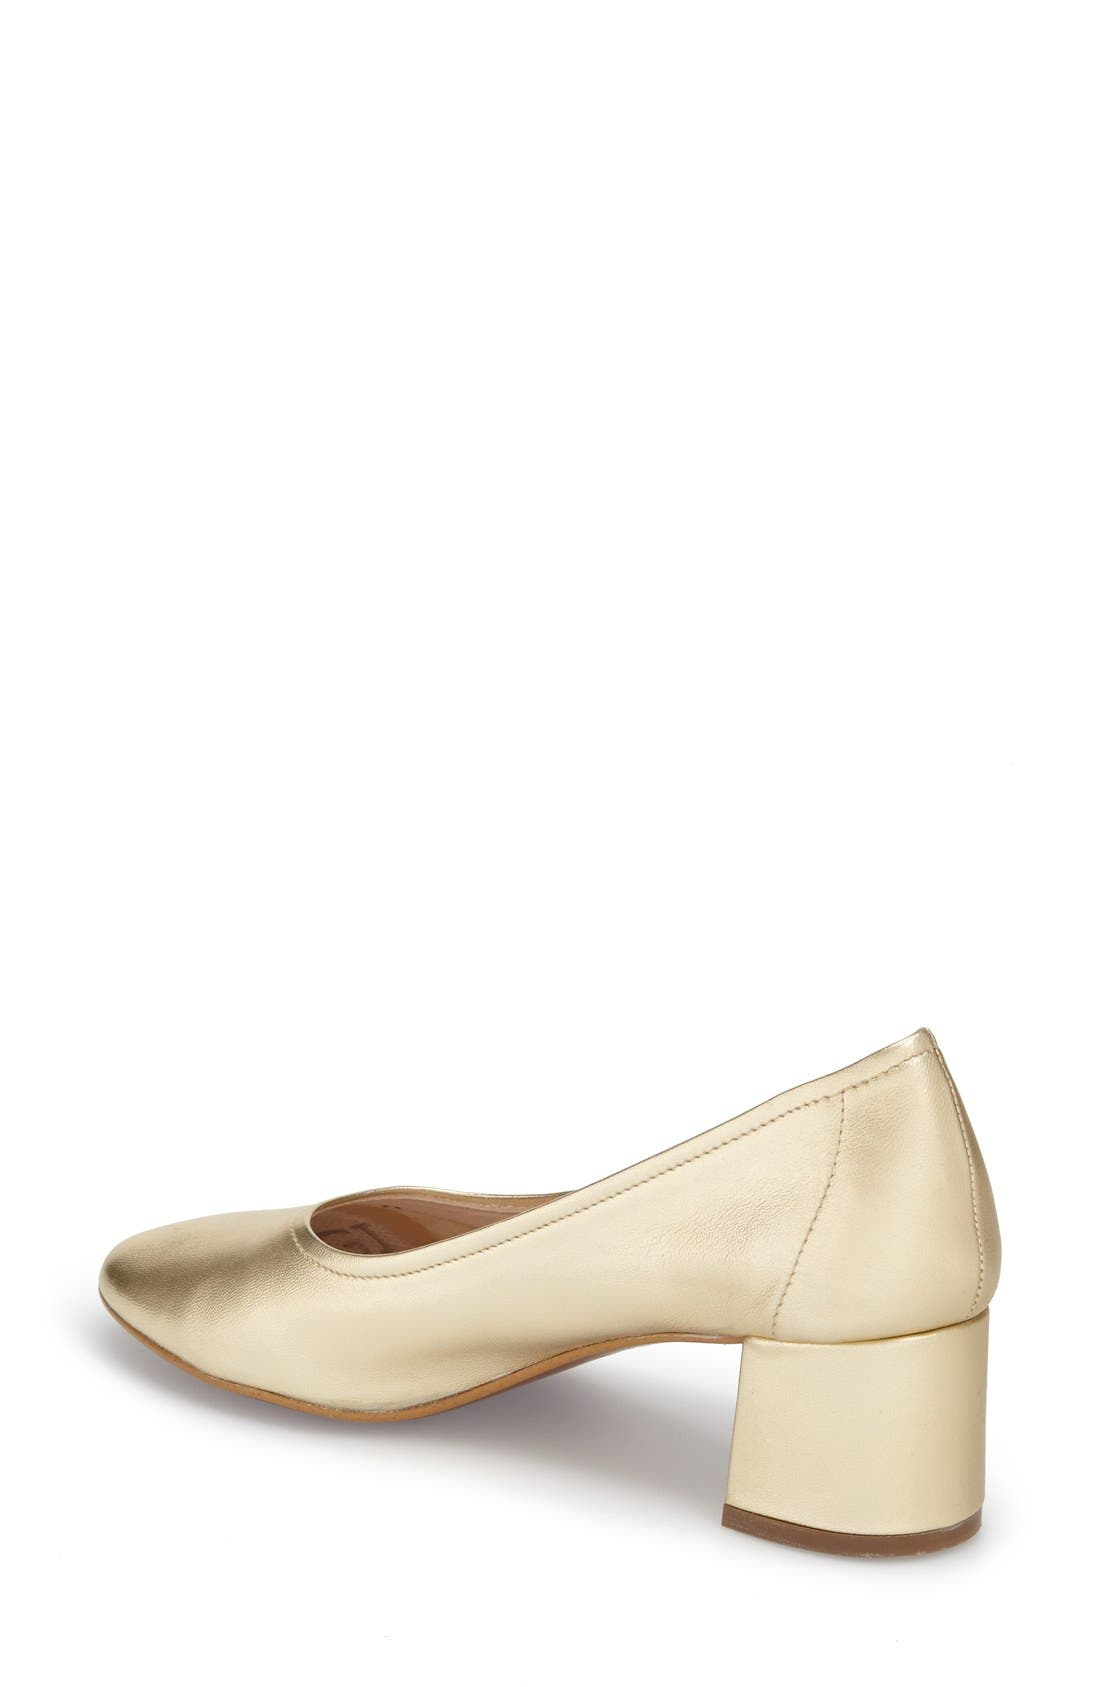 Alternate Image 2  - Topshop 'Juno' Ballet Shoe (Women)